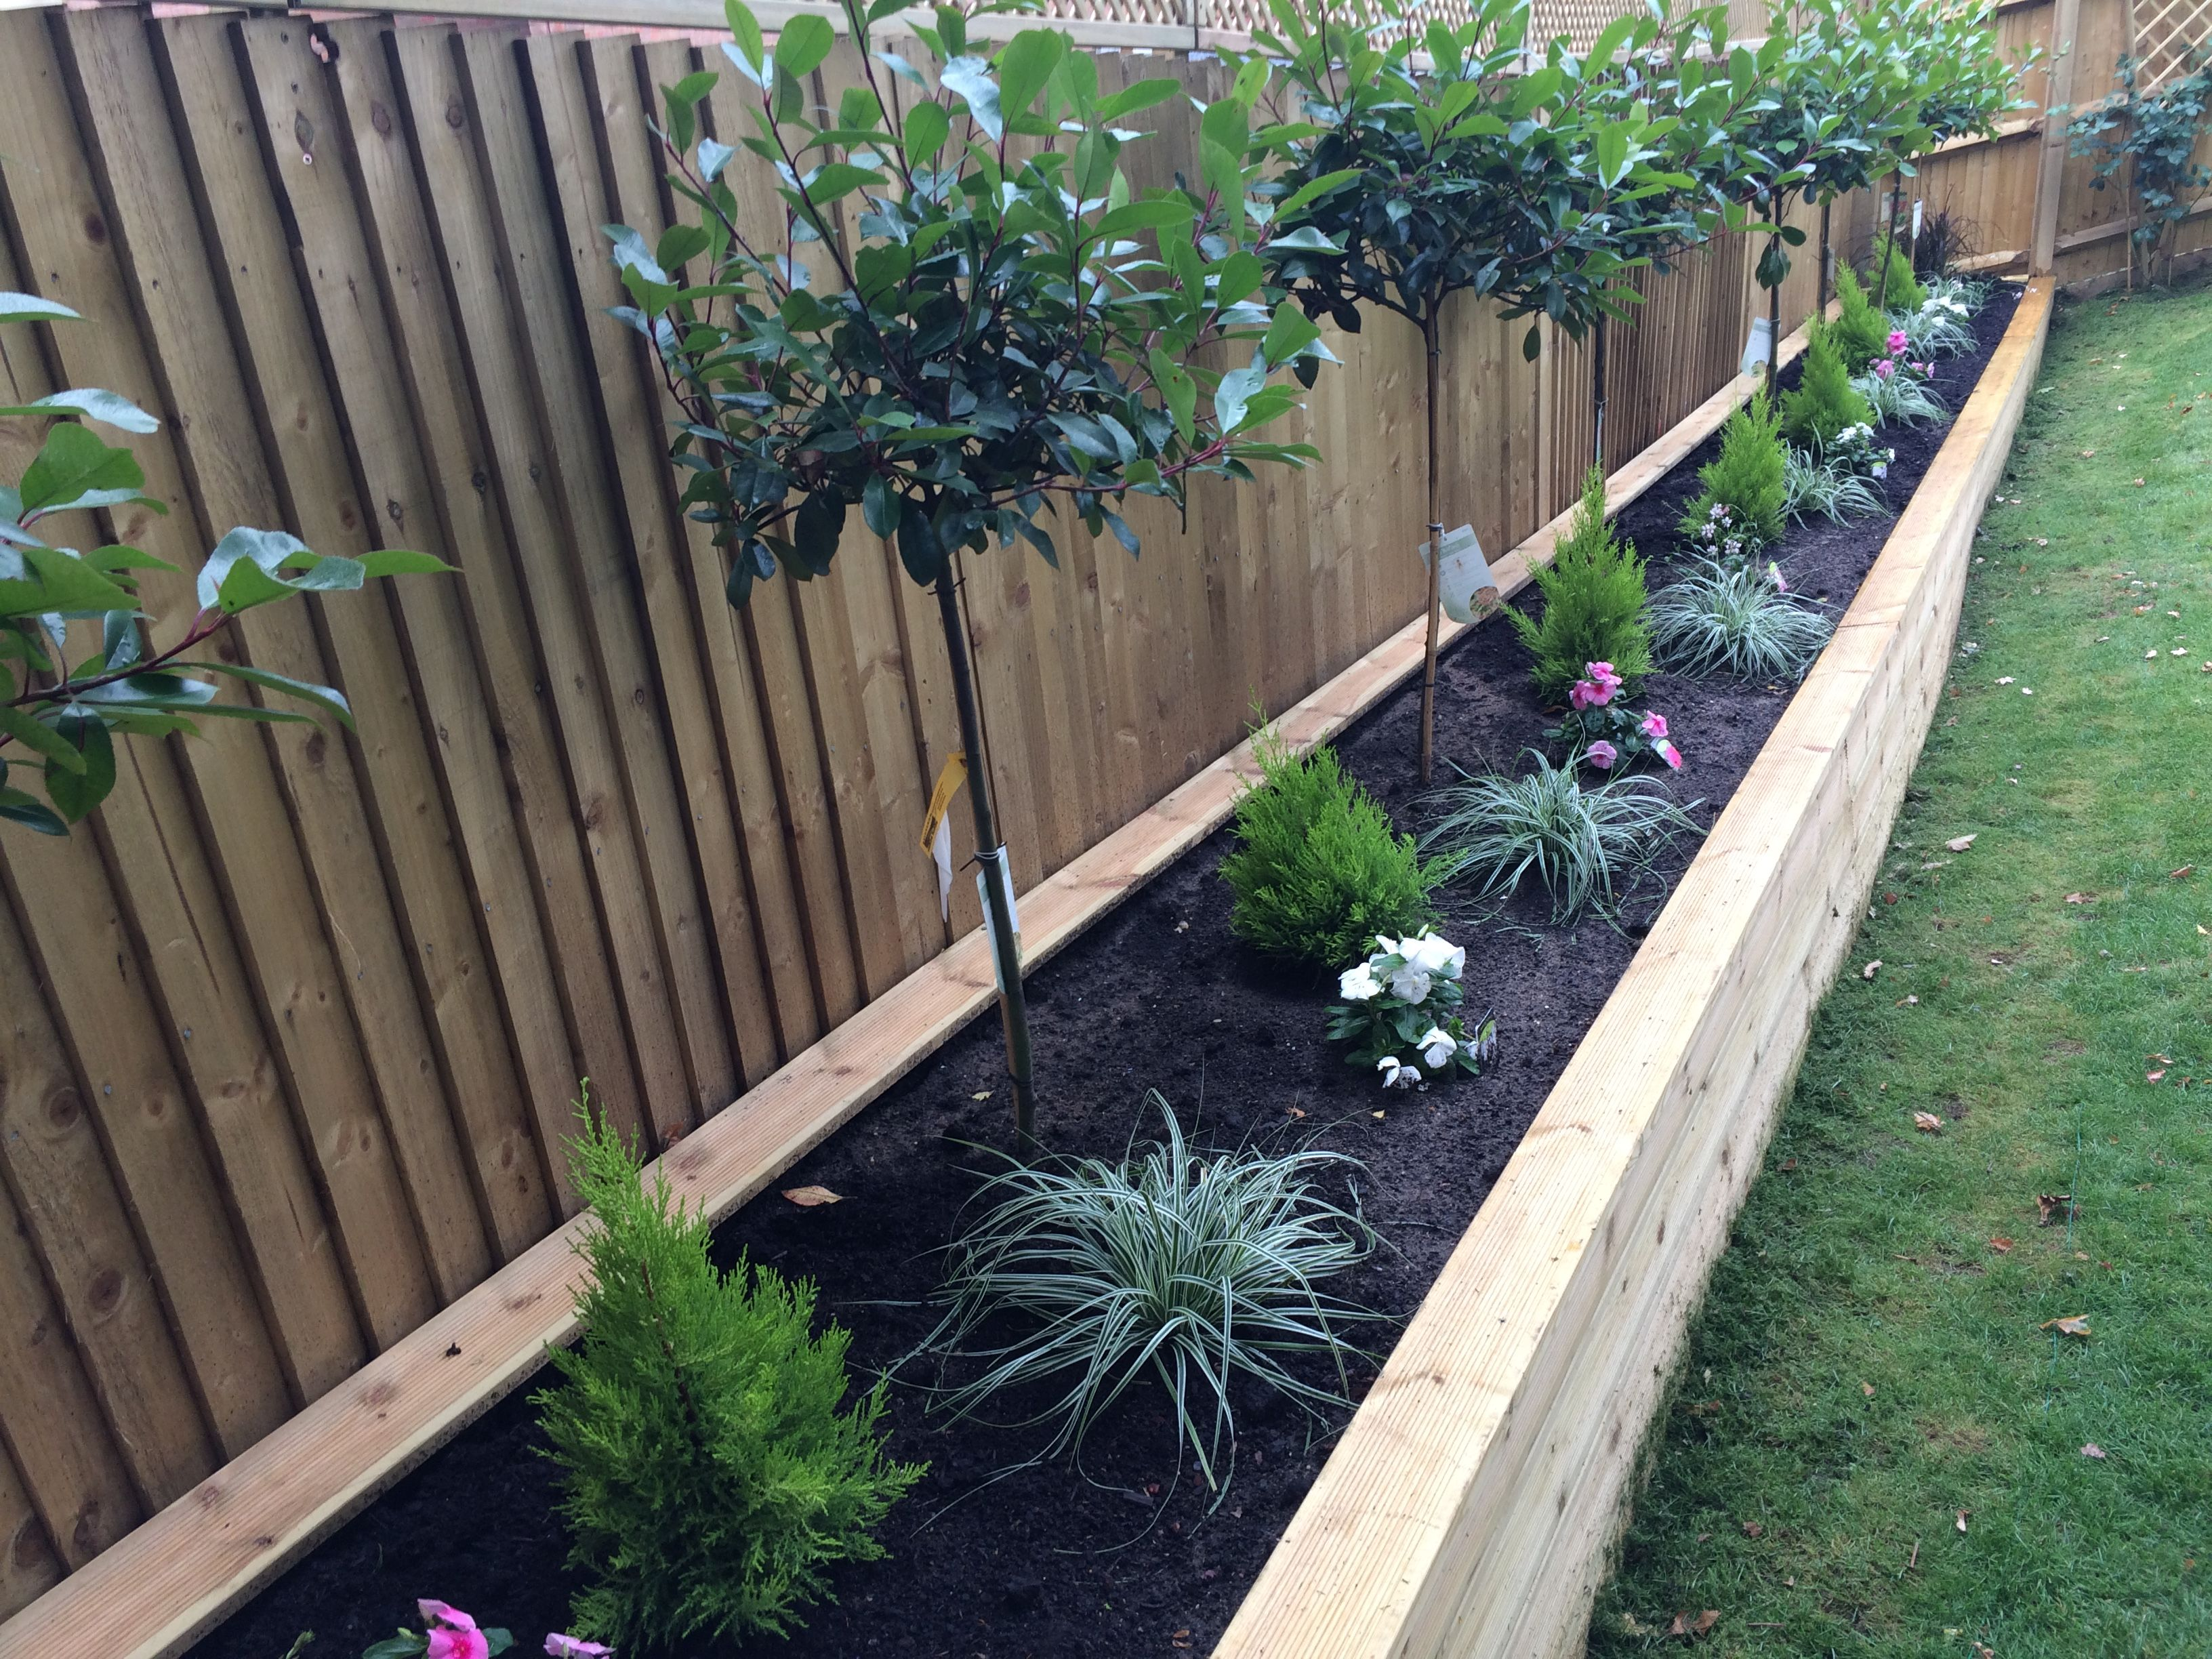 17 Diy Garden Fence Ideas To Keep Your Plants Diy Garden